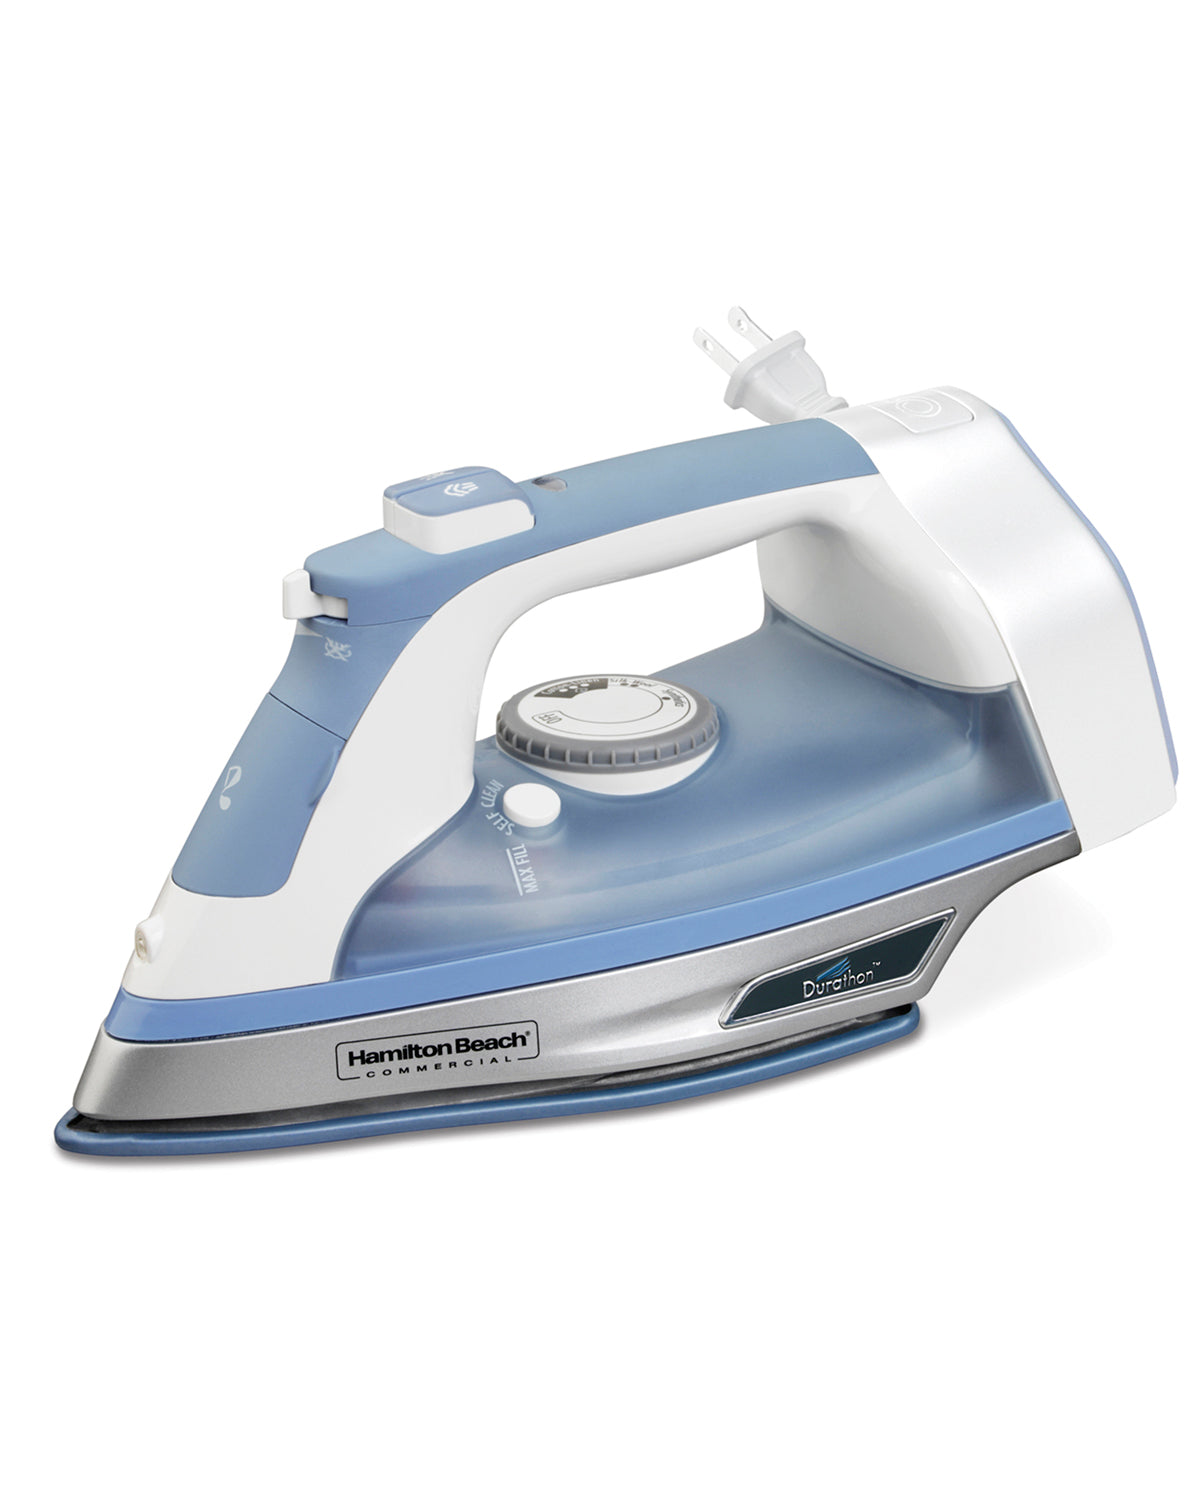 Durathon® Full-Size Iron with Retractable Cord